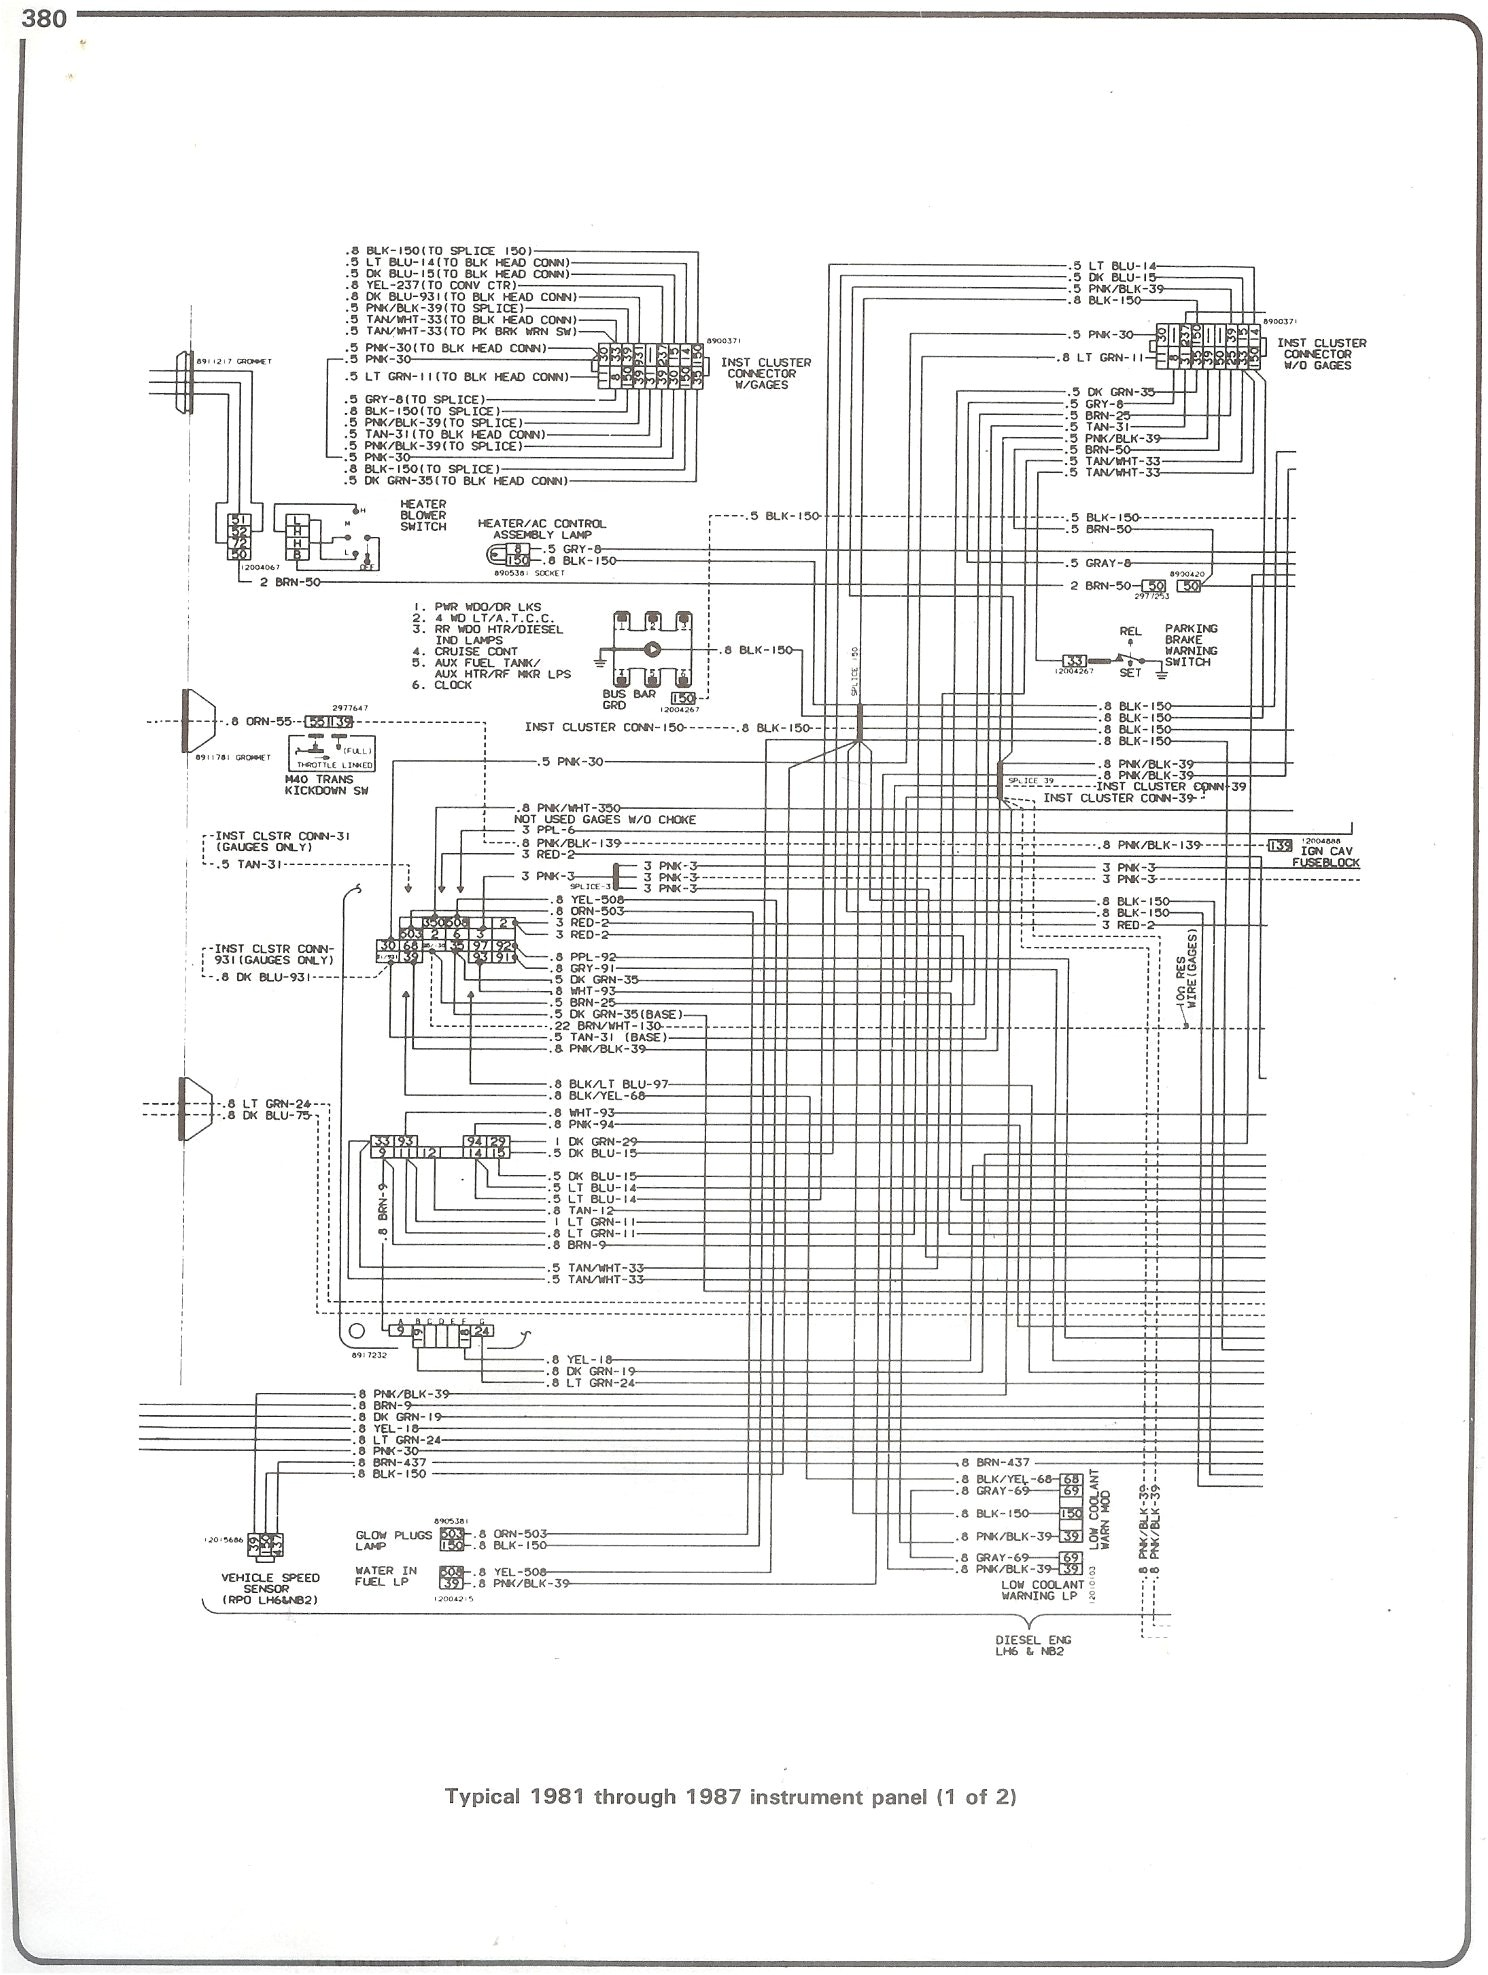 1975 Chevrolet Wiring Diagram Trusted Diagrams 1974 Chevy 350 Download U2022 Rh Wiringdiagramblog Today Truck Alternator